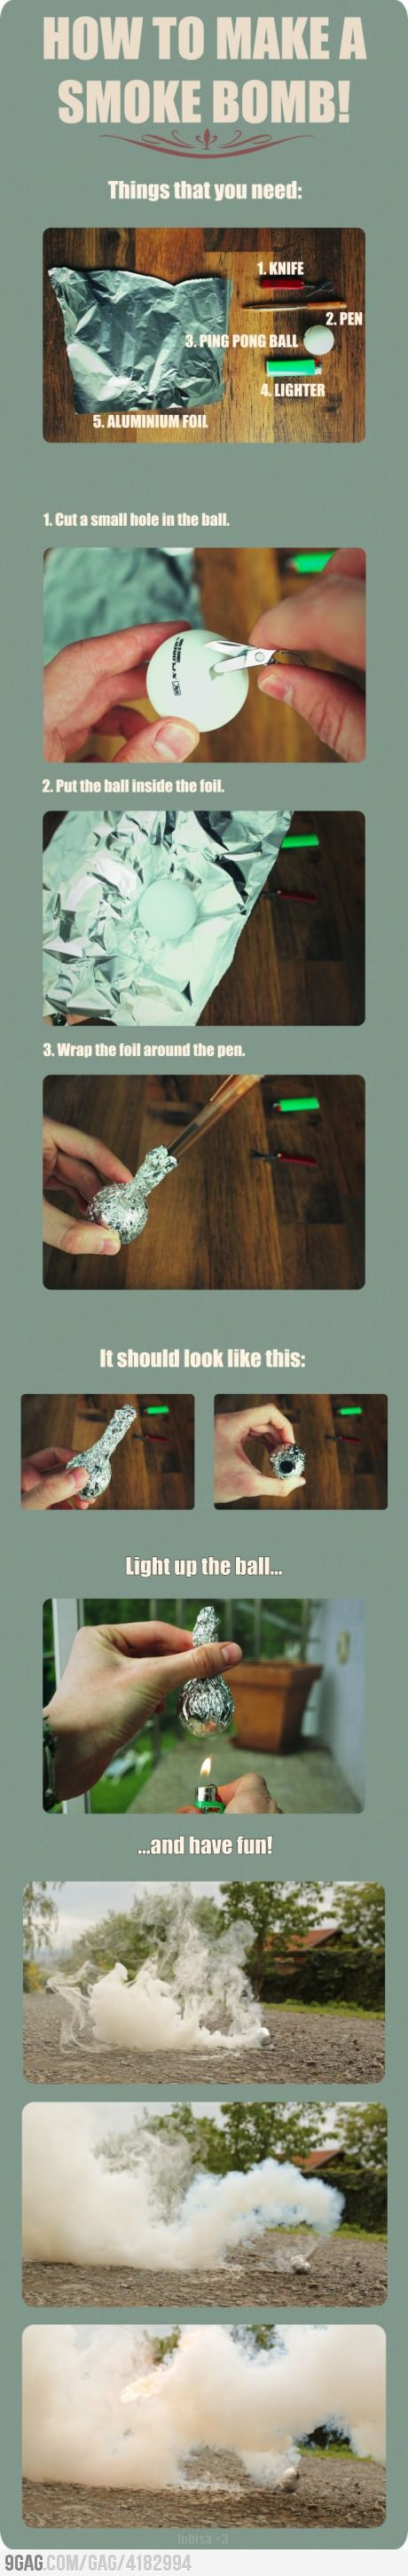 How to make a smoke bomb.